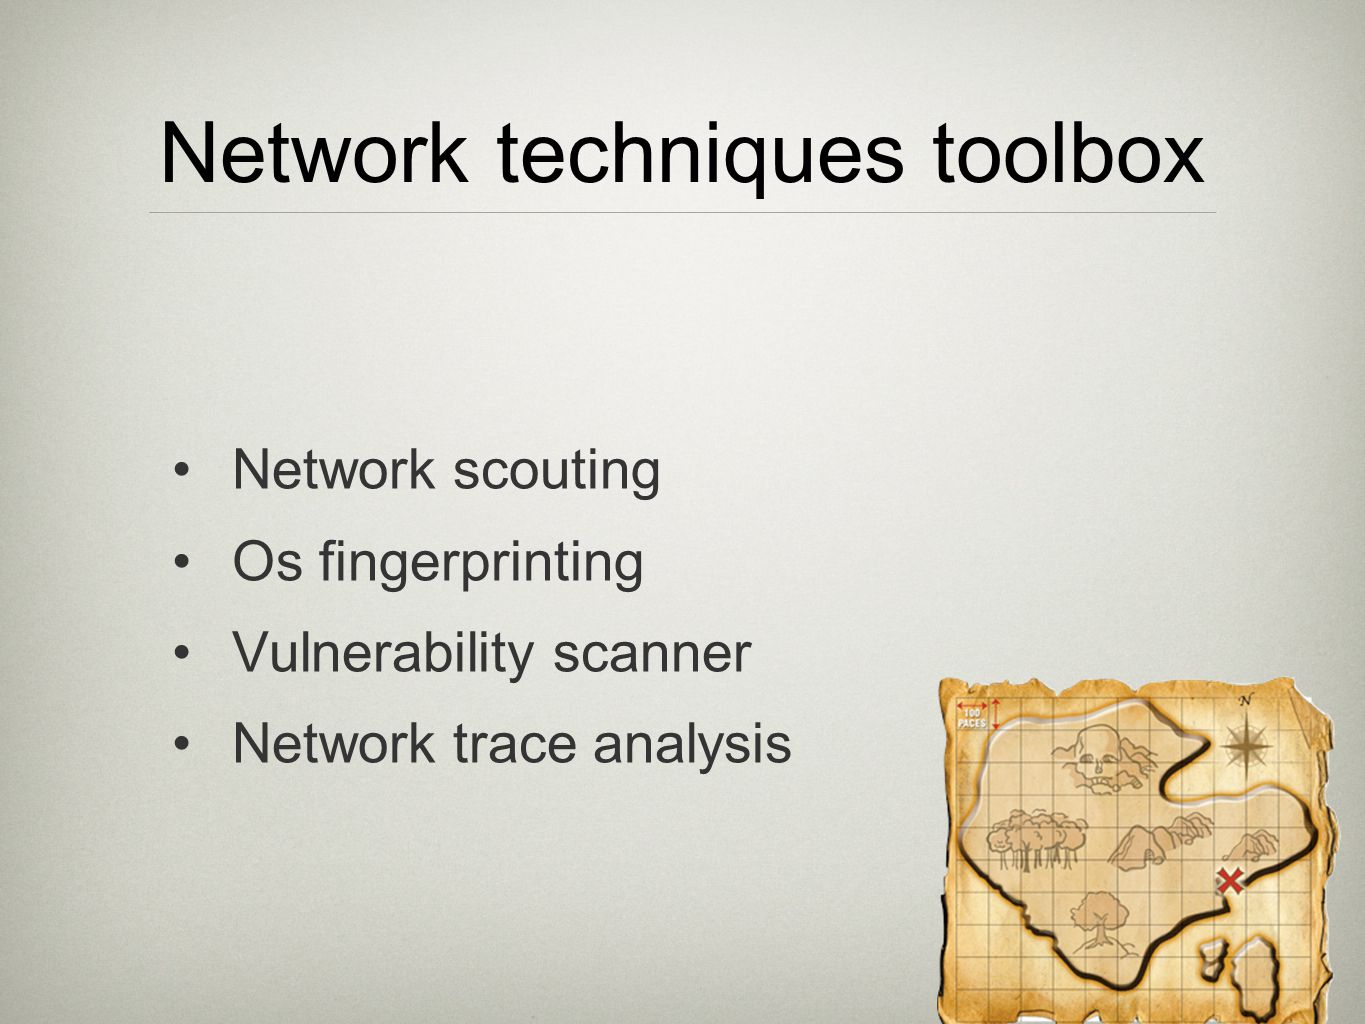 Network scouting